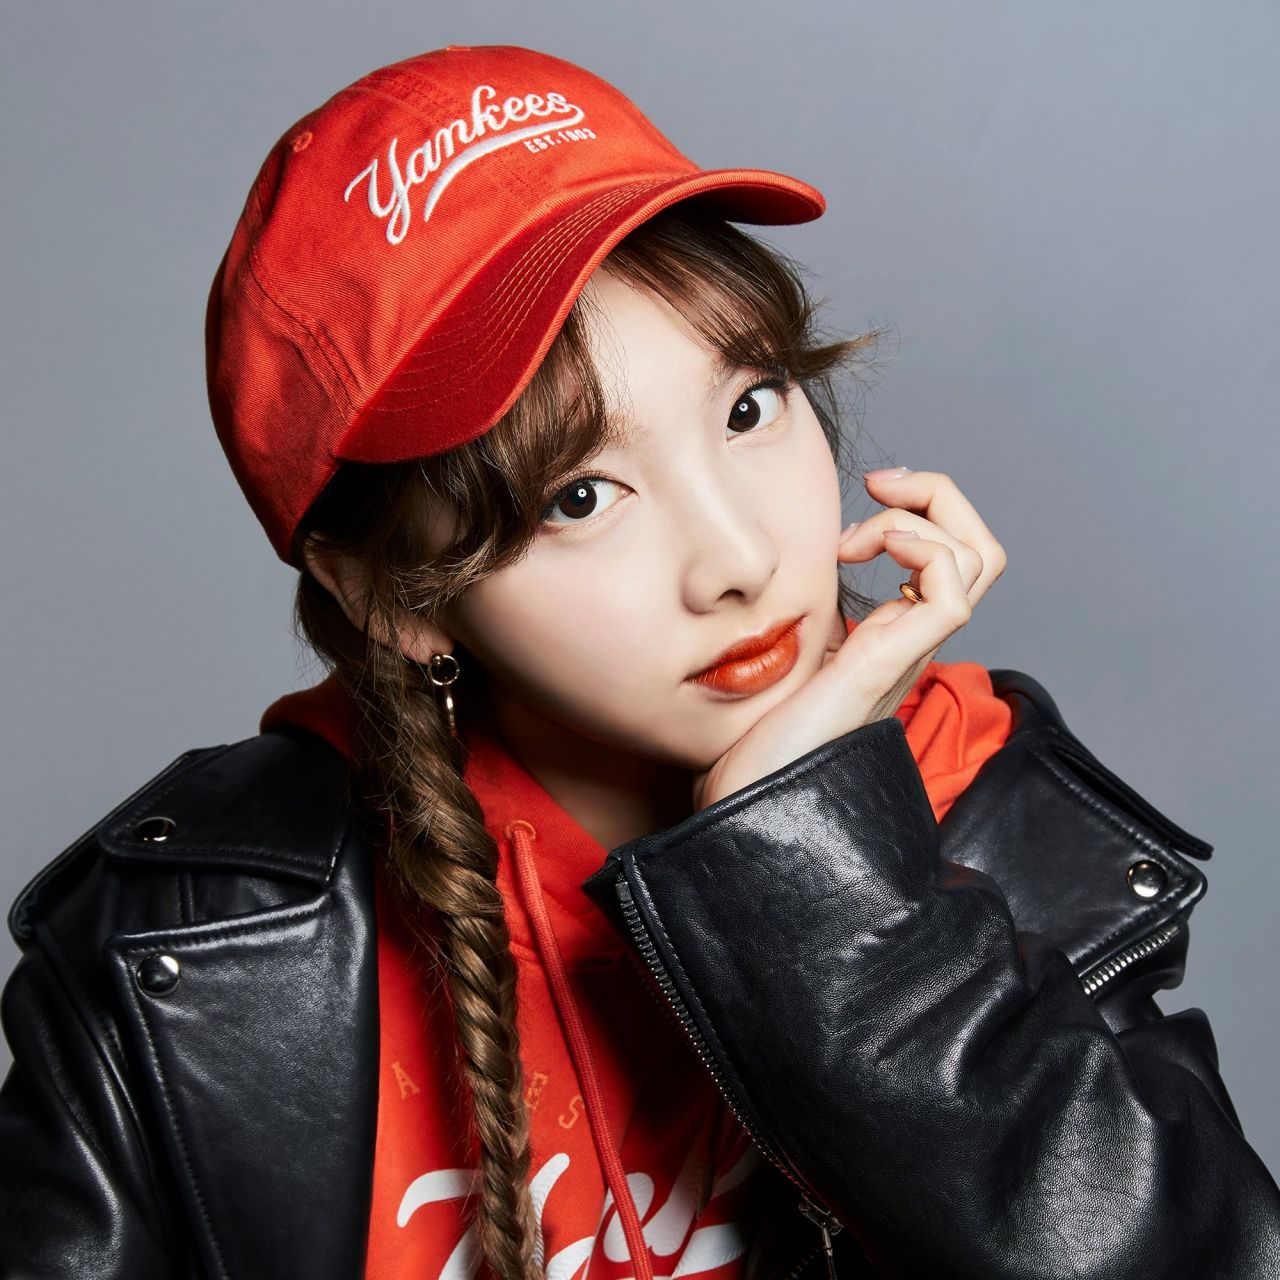 Twice Photoshoot For Mlb 2018